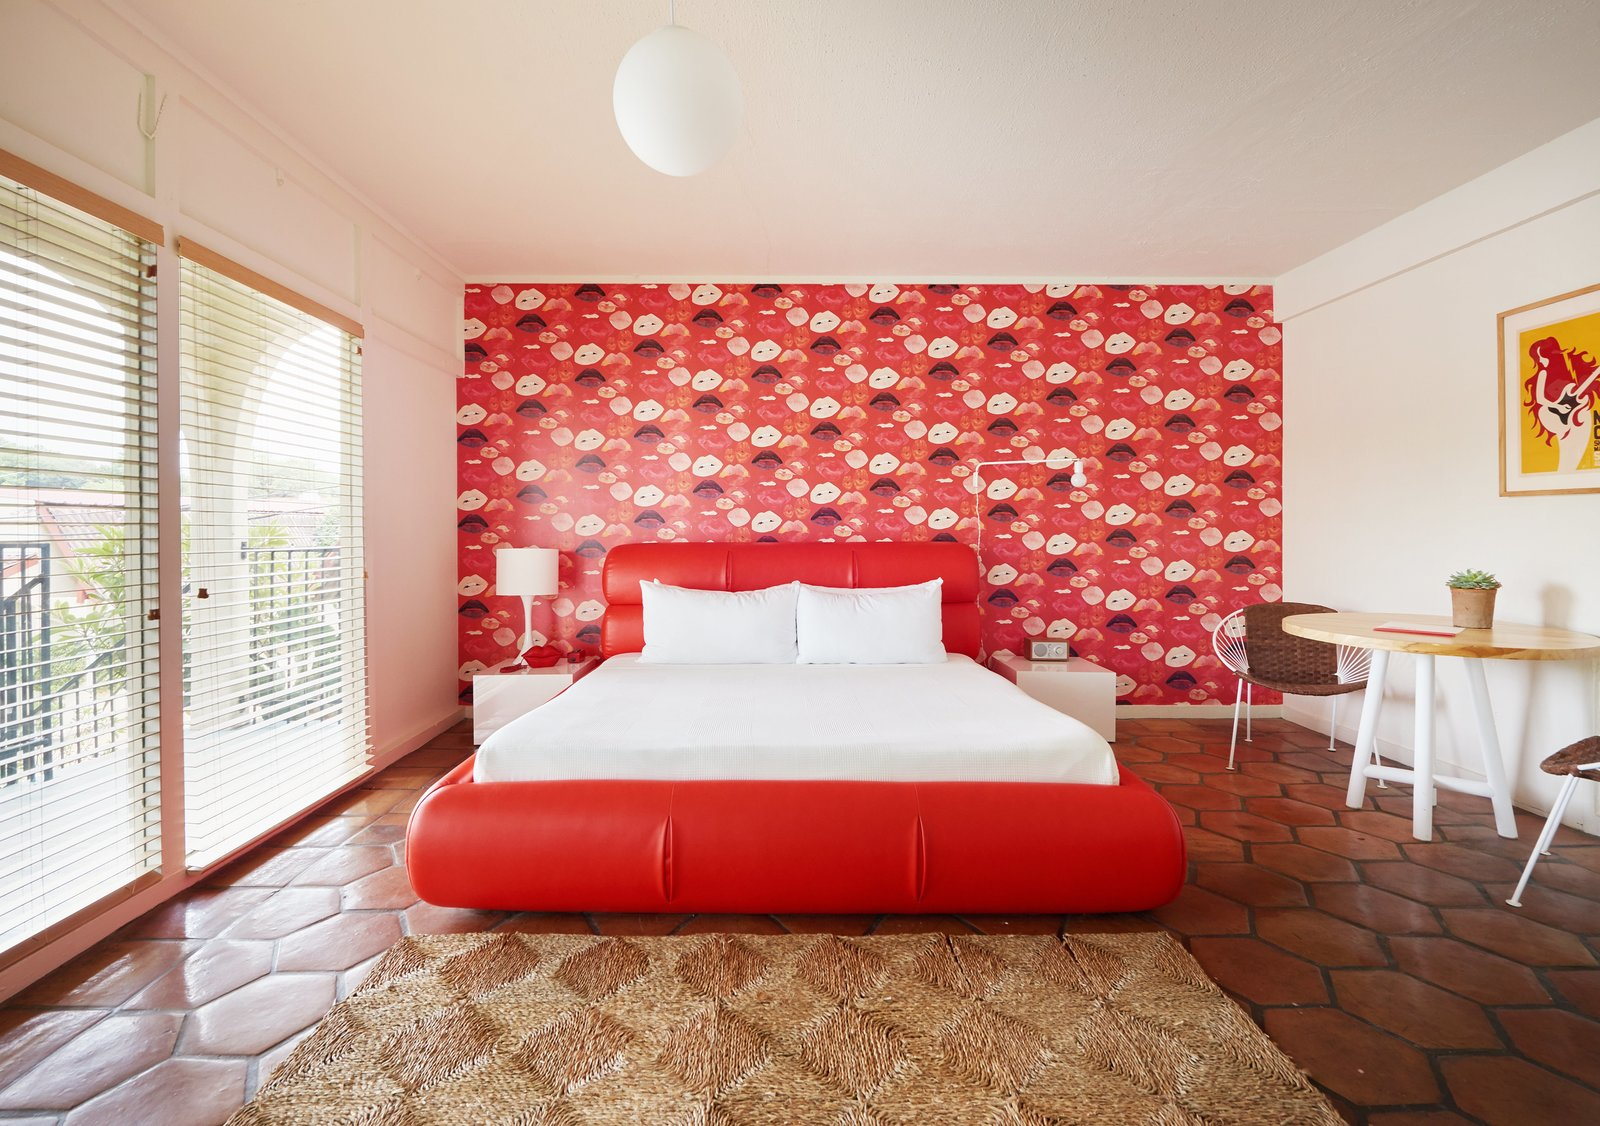 Bedroom, Table Lighting, Pendant Lighting, Night Stands, Bed, Rug Floor, Chair, Wall Lighting, and Terra-cotta Tile Floor  Photo 1 of 13 in The Rejuvenated Austin Motel Welcomes Guests With Upbeat, Midcentury-Modern Vibes